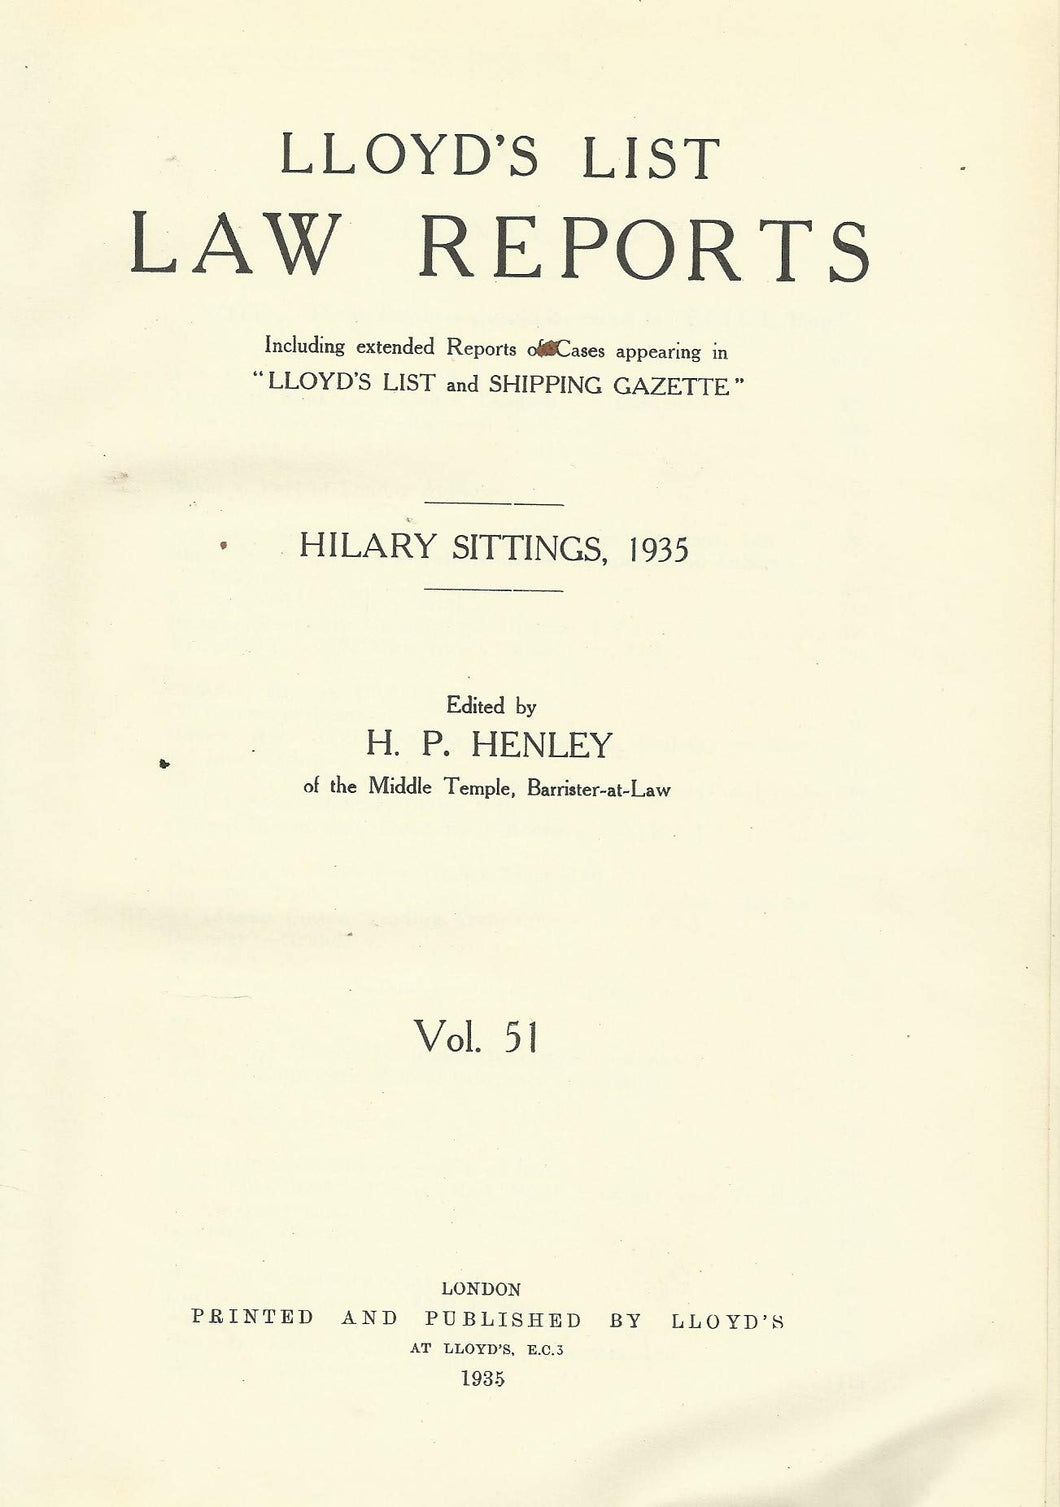 Lloyd's List Law Reports - Hilary Sittings, 1935, Vol 51